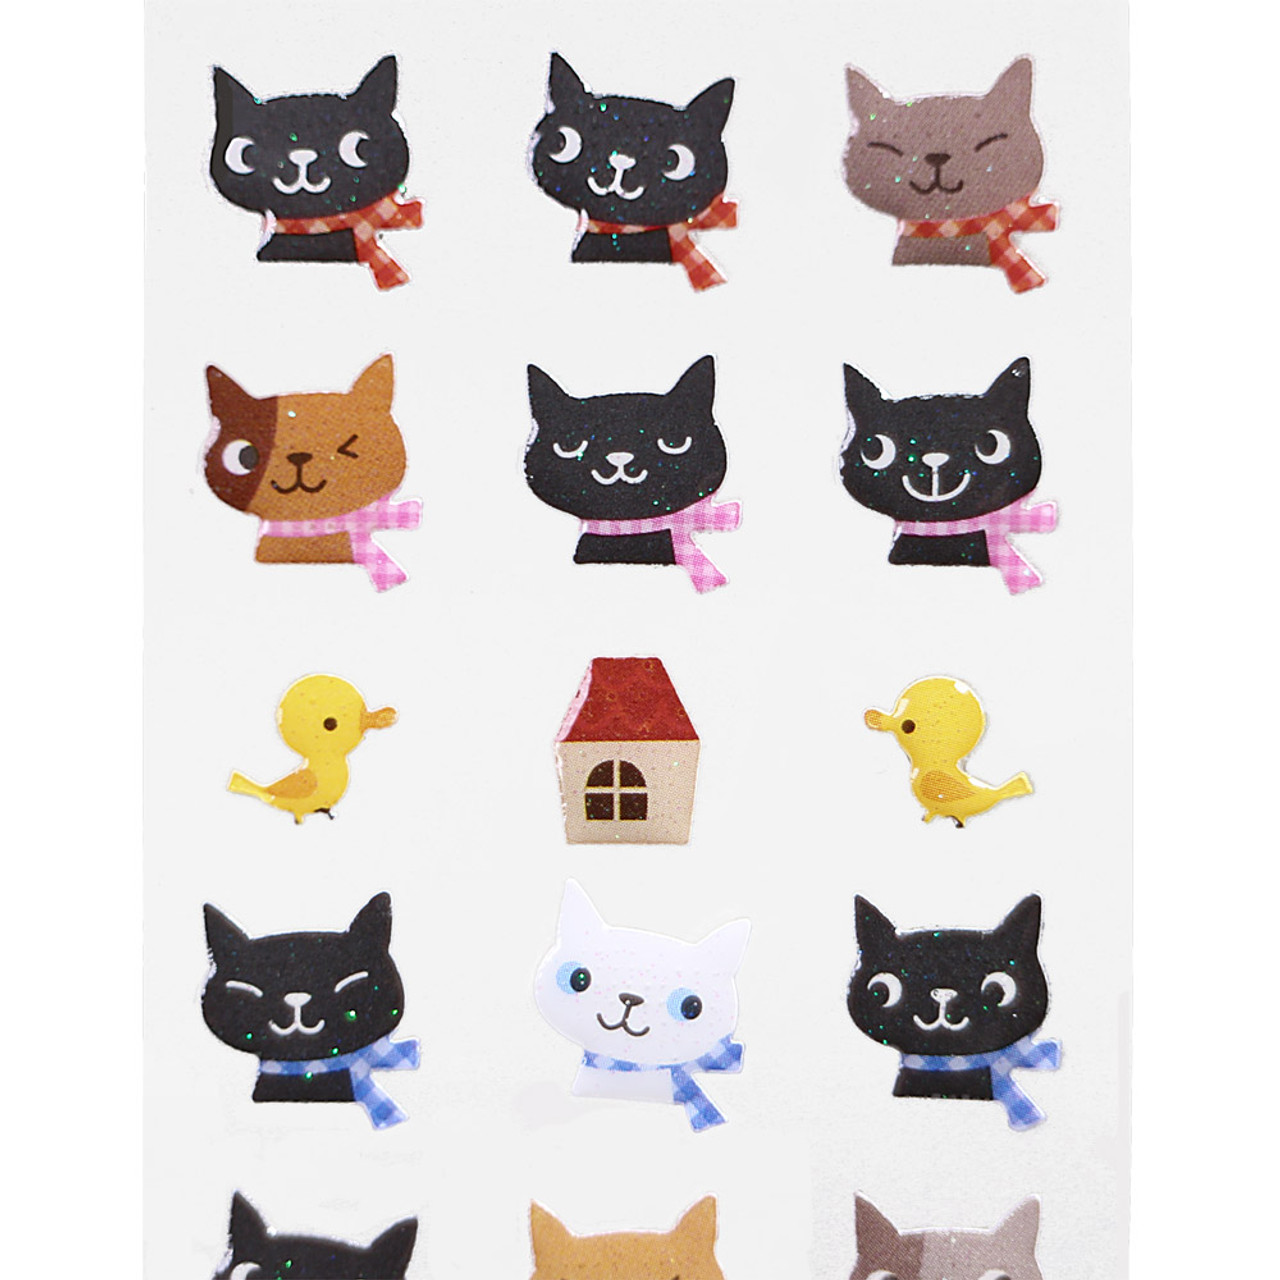 Japan Ark Road Sticker Collection Cute Cats Birds & House Sticker ST-104 ( Close-up )